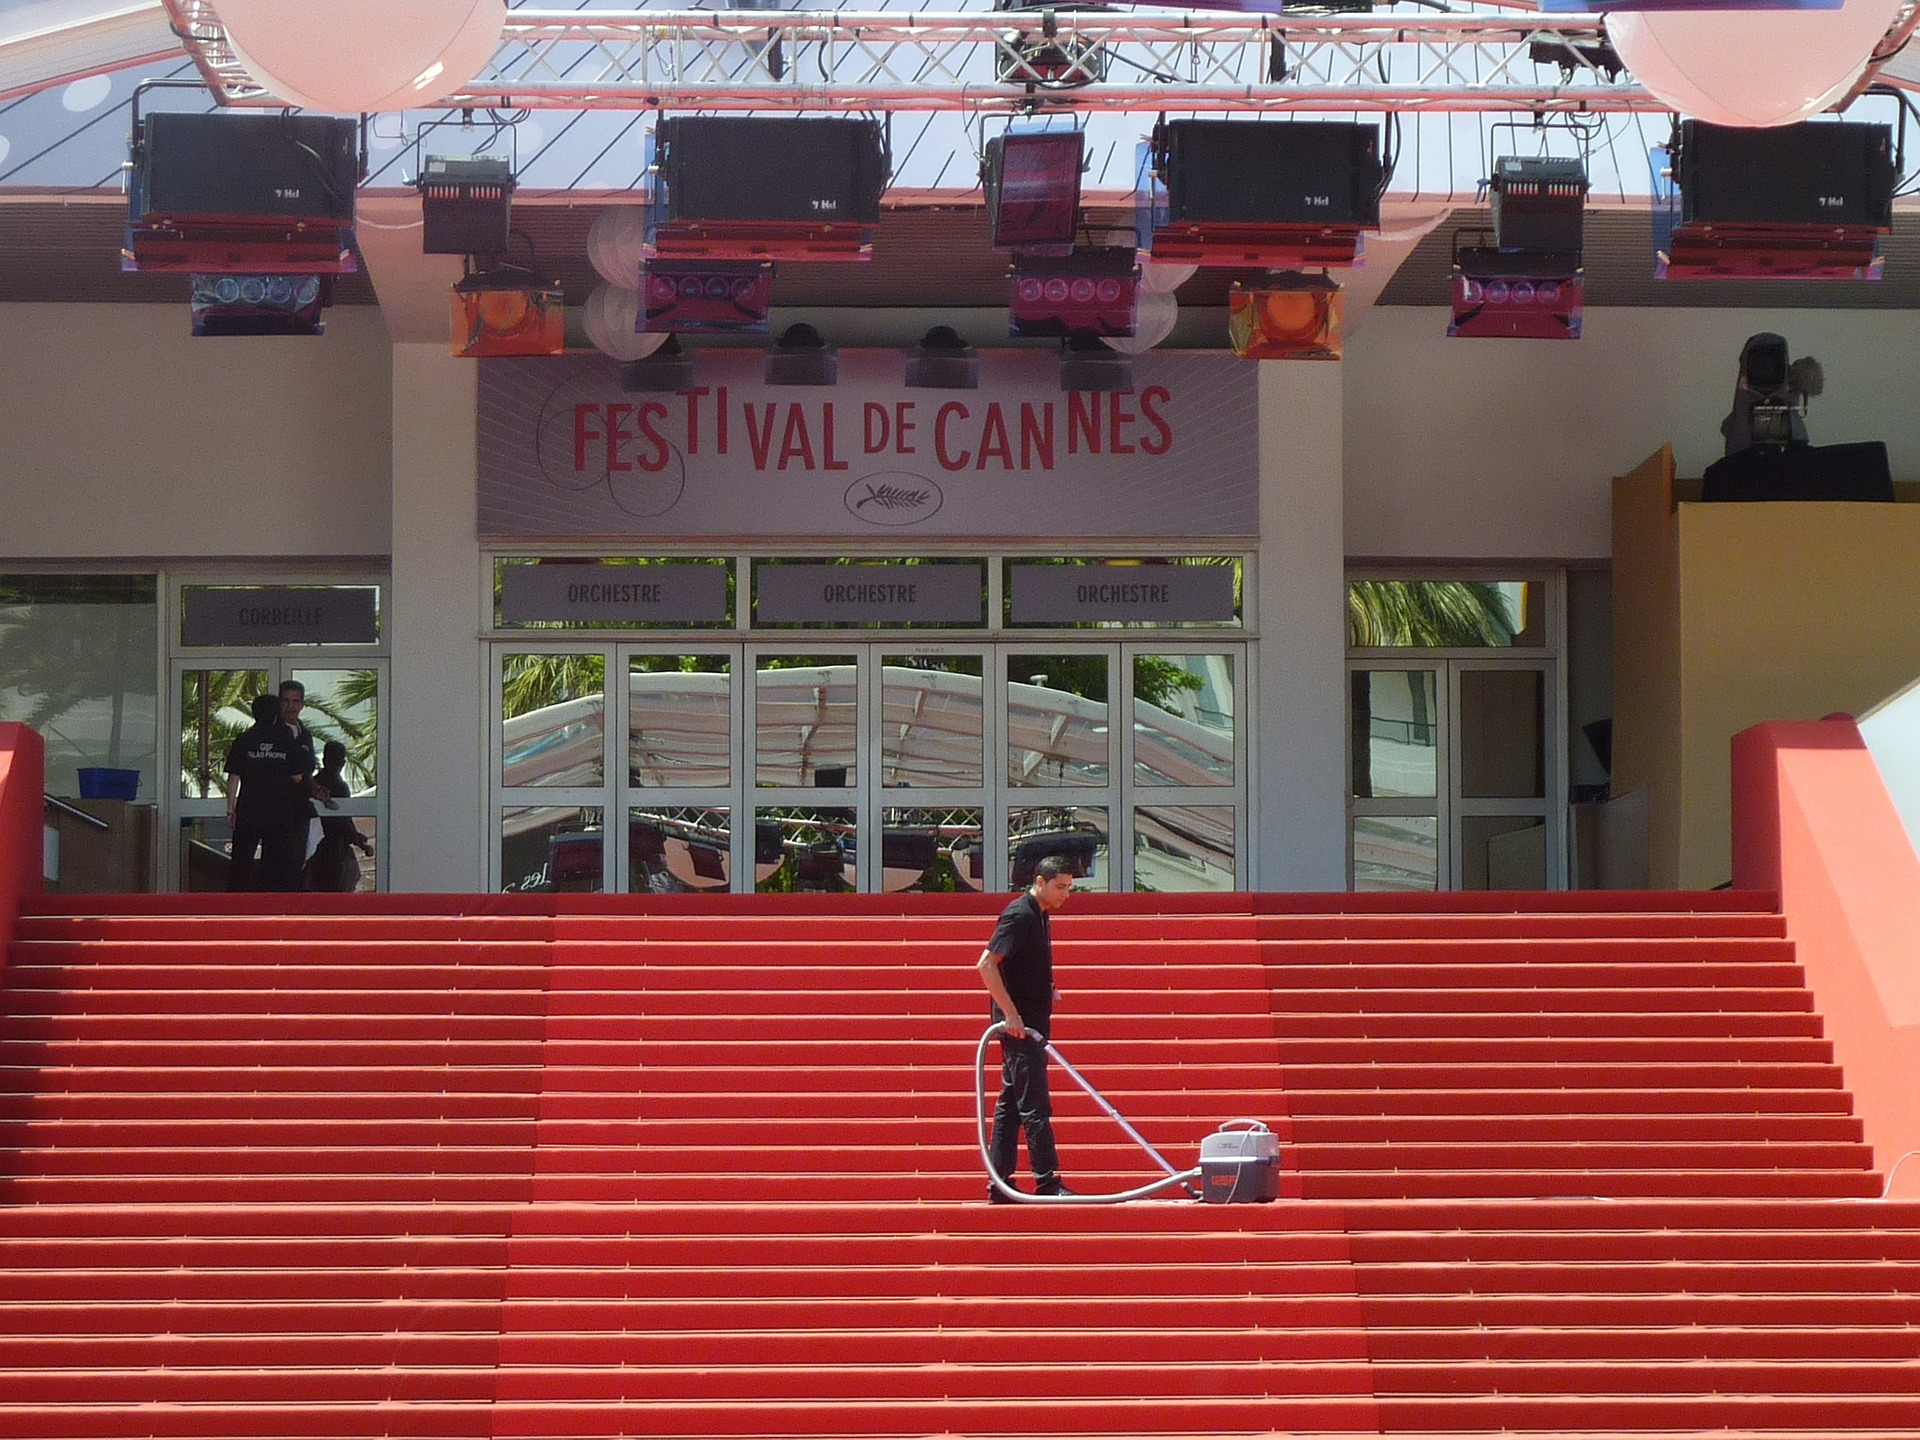 Books about Cannes Film Festival